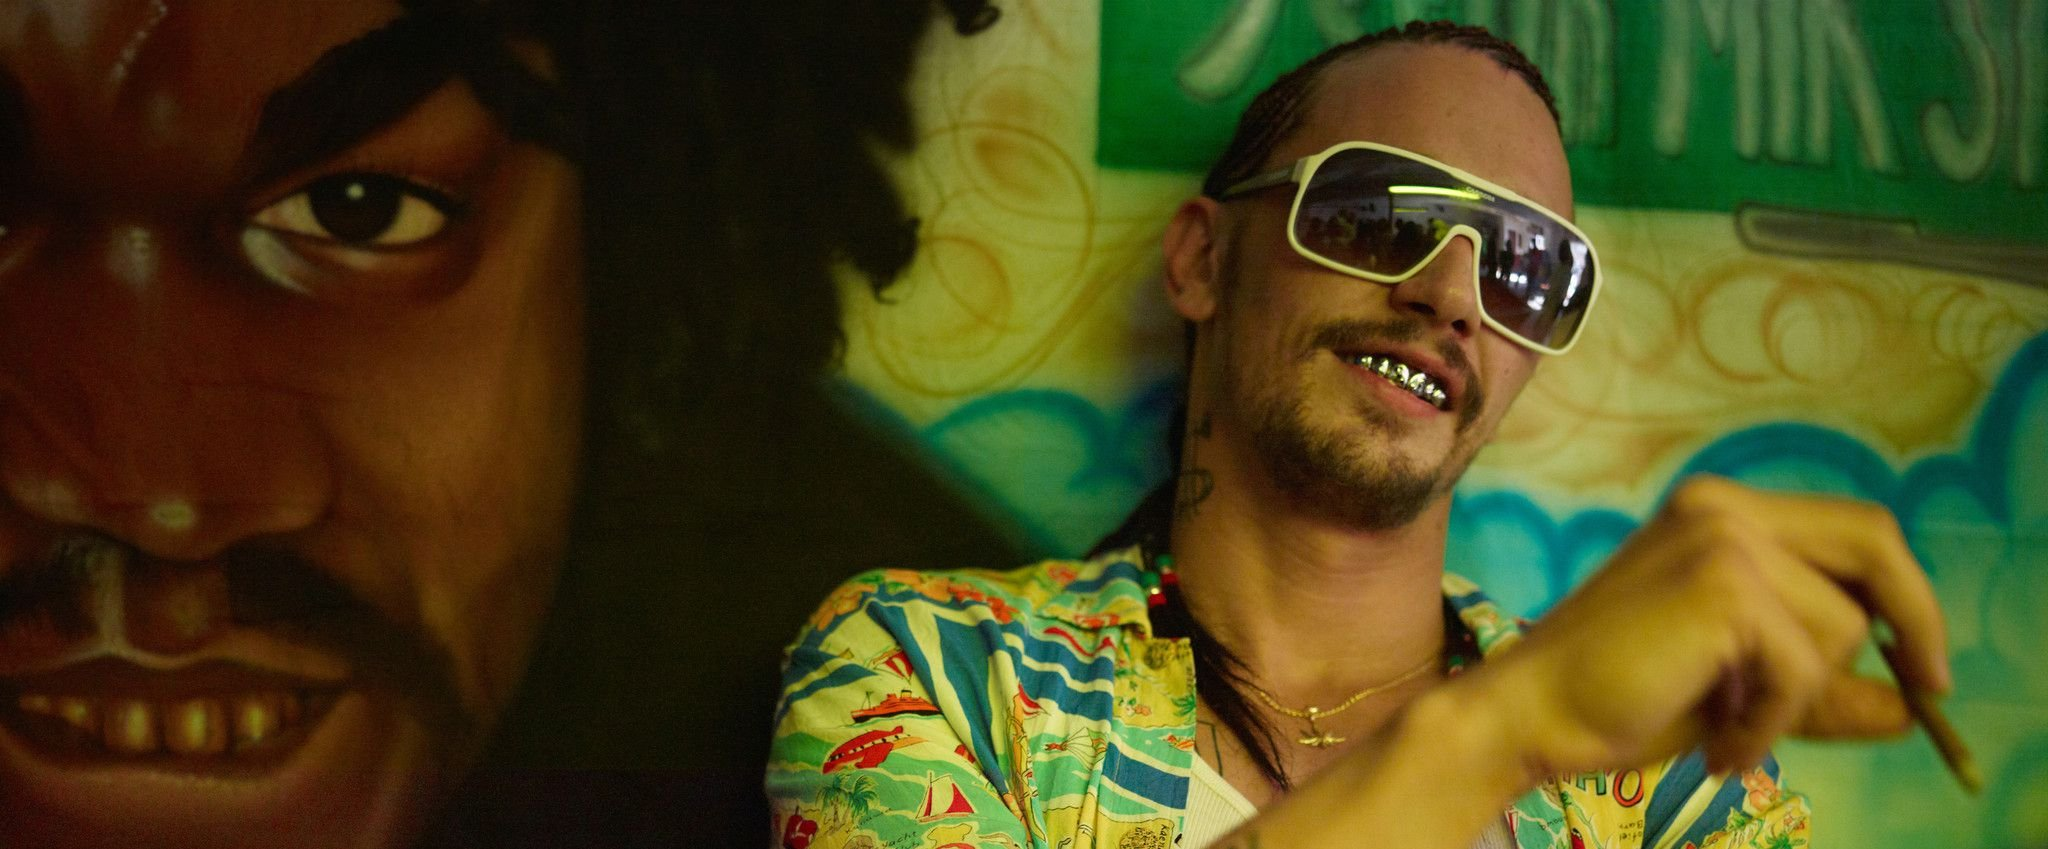 An image from Spring Breakers